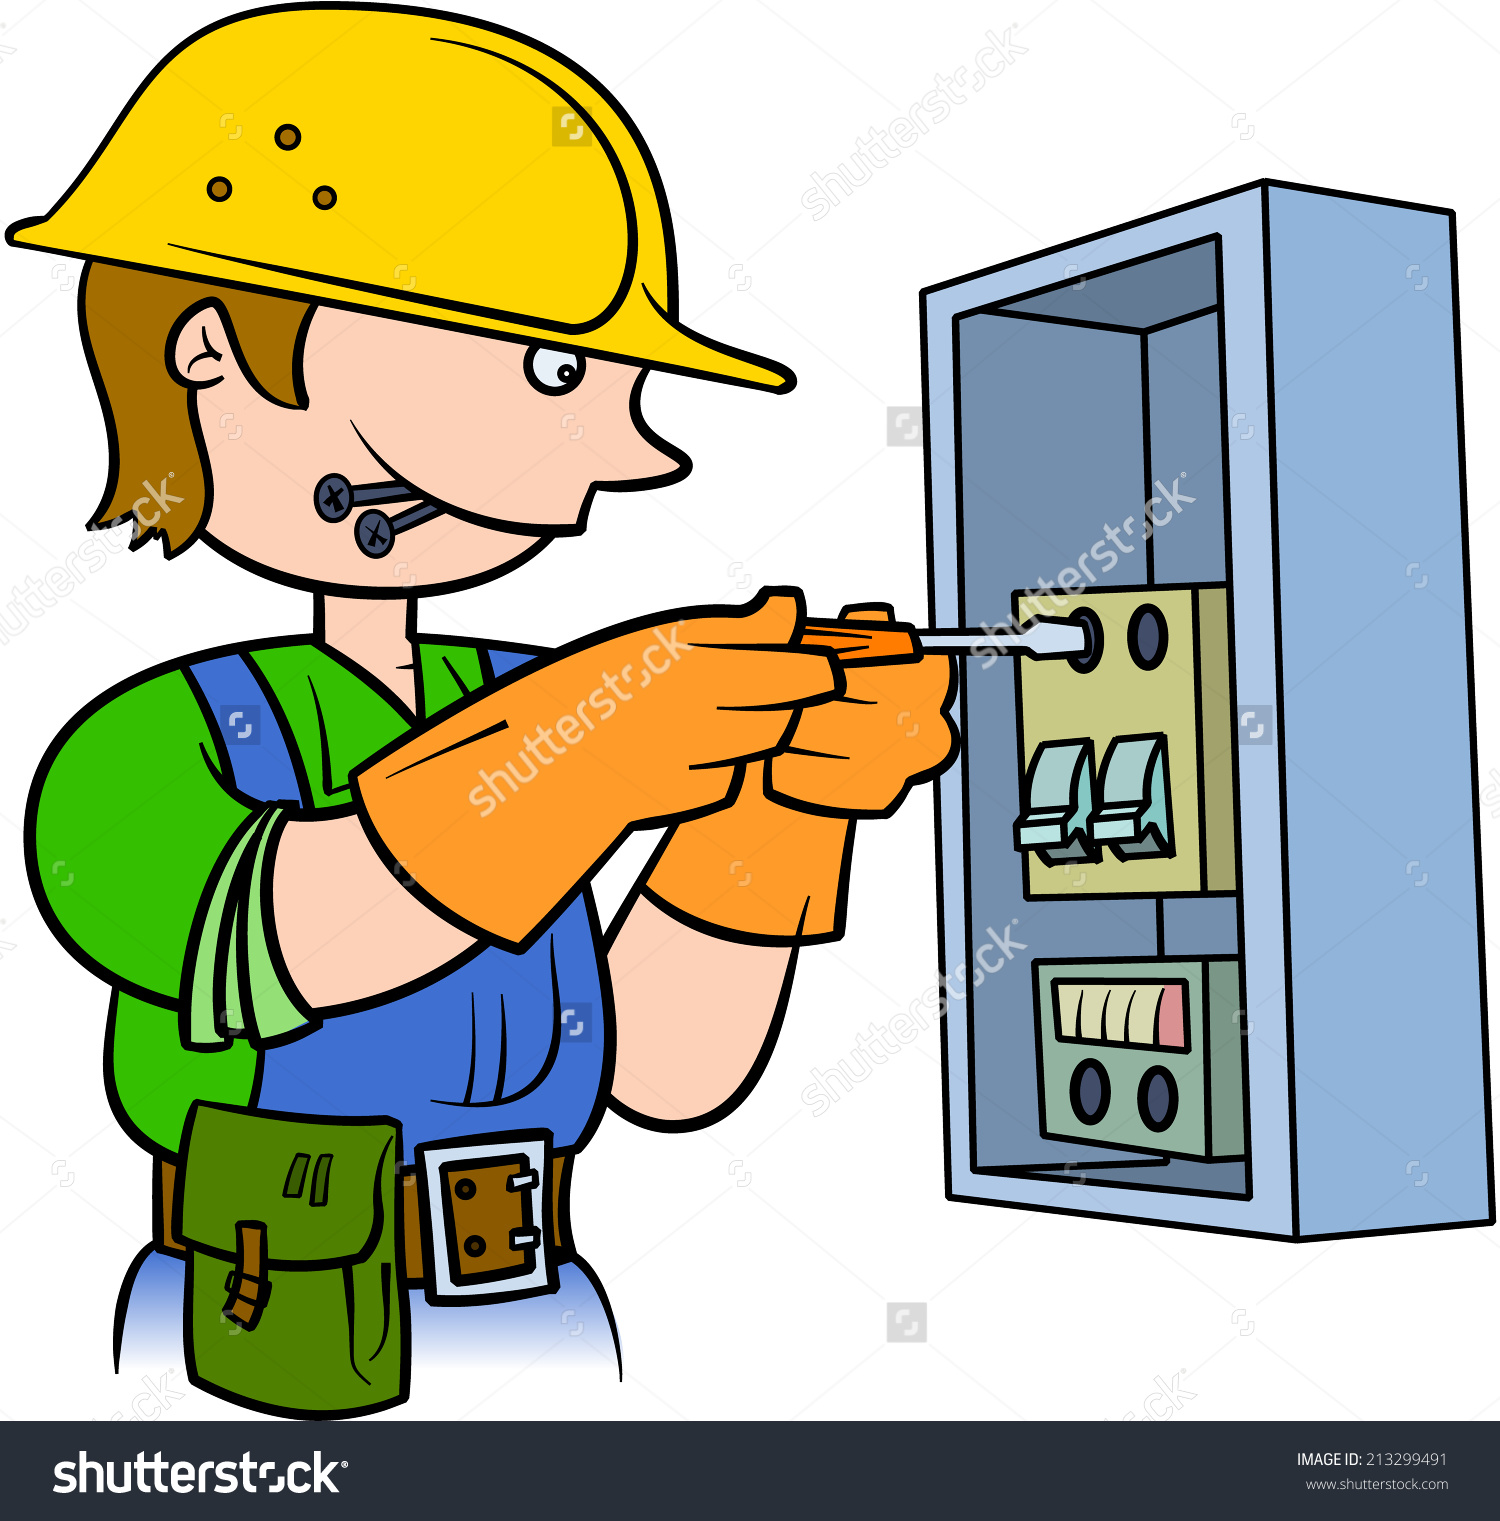 Clipart electricicon jpg free library 28+ Electrician Clipart | ClipartLook jpg free library